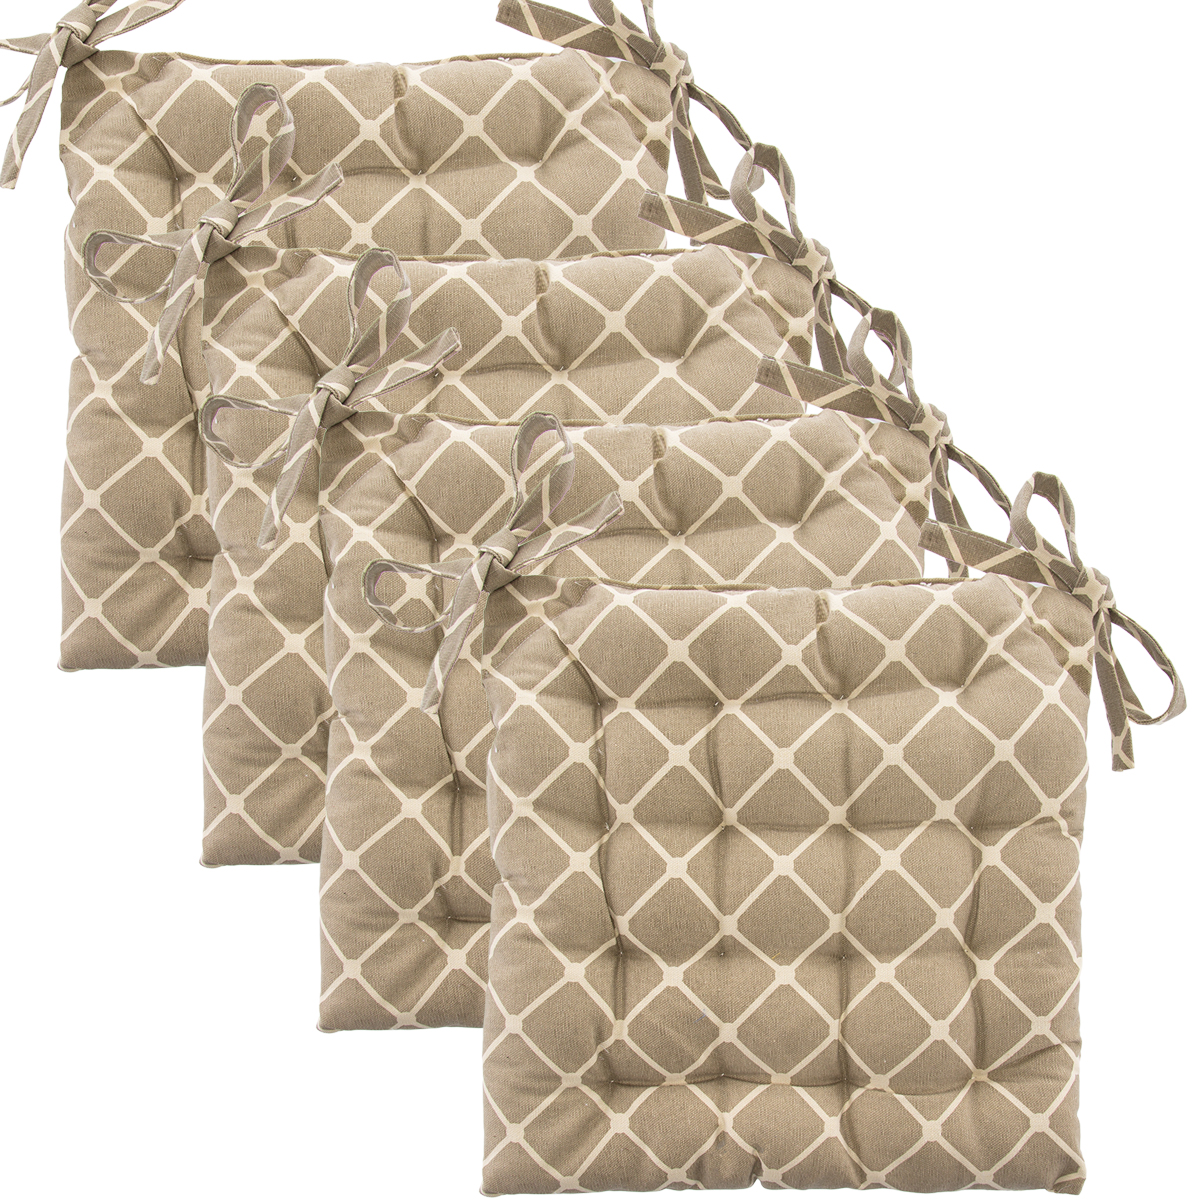 dining chair cushions with ties sears canada covers set of 4 cotton indoor reversible pads and